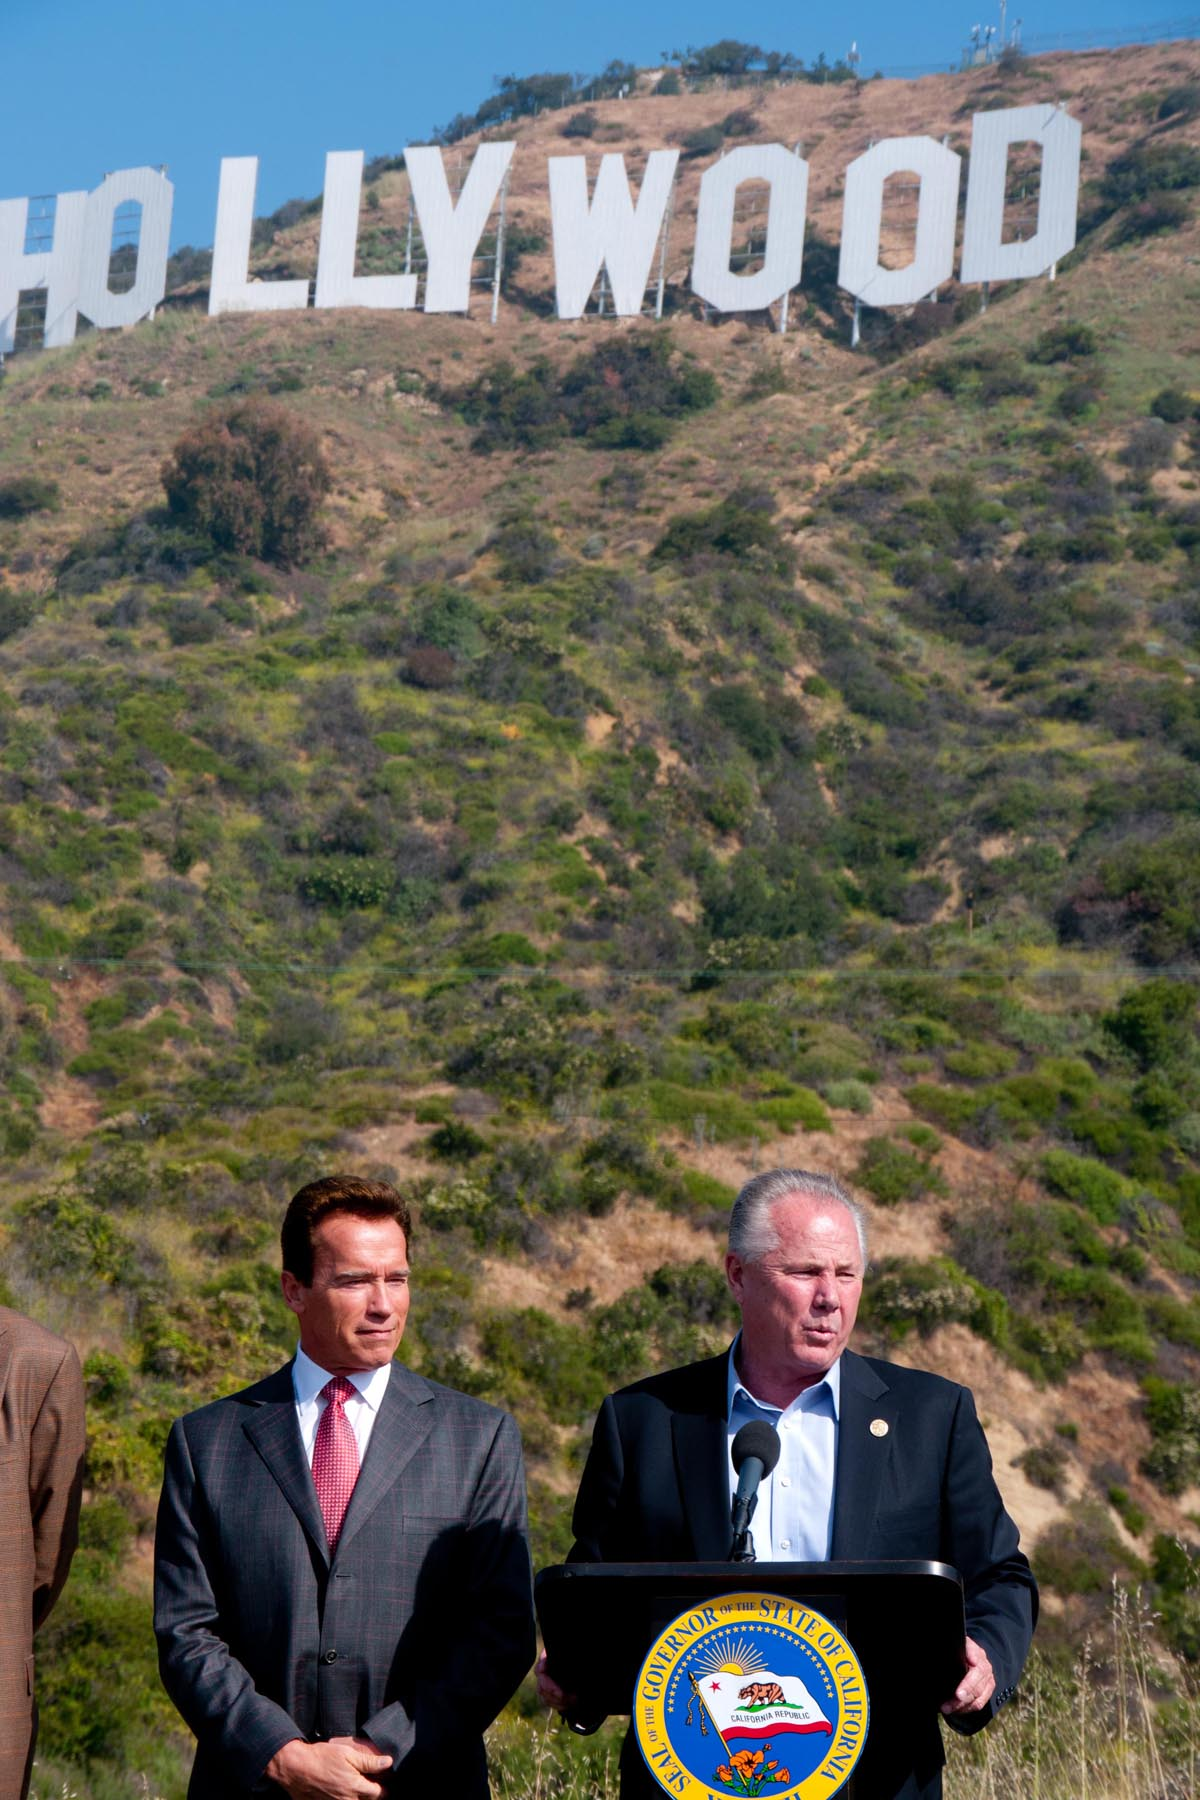 Governor of California, Arnold Schwarzenegger and Councilmember 4th District, Tom LaBonge